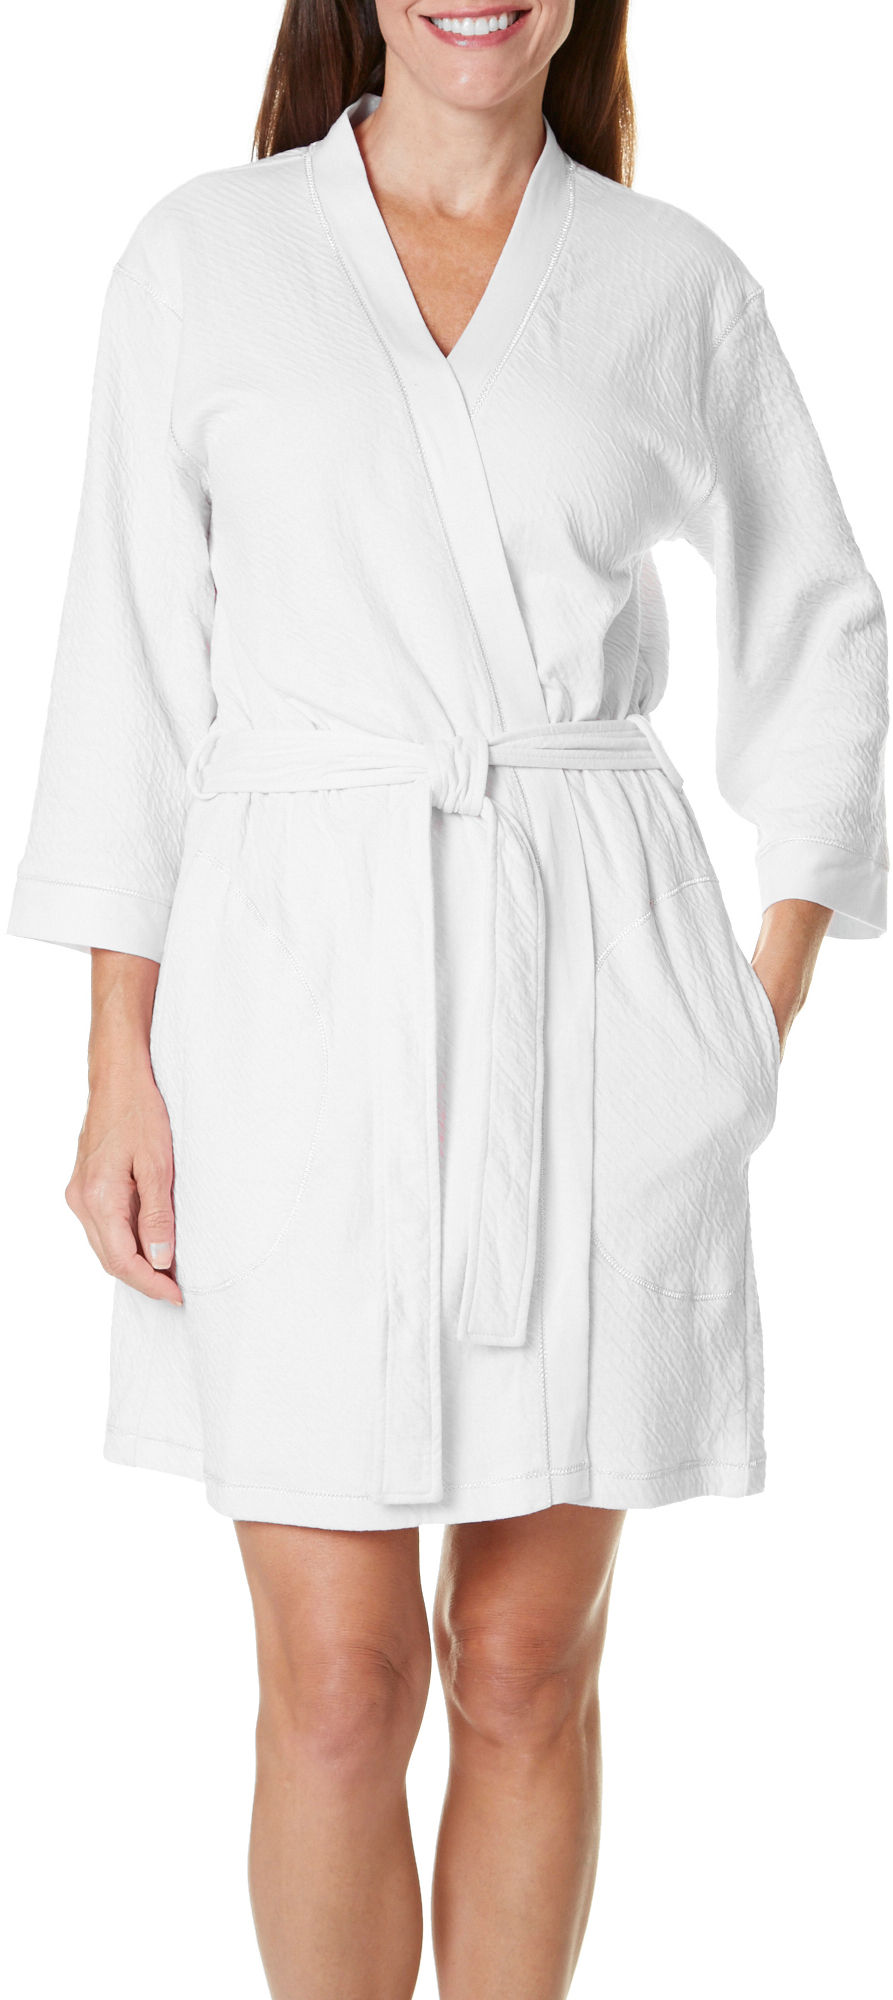 Ravishing robes from Calvin Klein, Jones New York, Lord & Taylor, Jasmine Rose and more at great prices at Hudson's Bay. Free shipping on orders over $